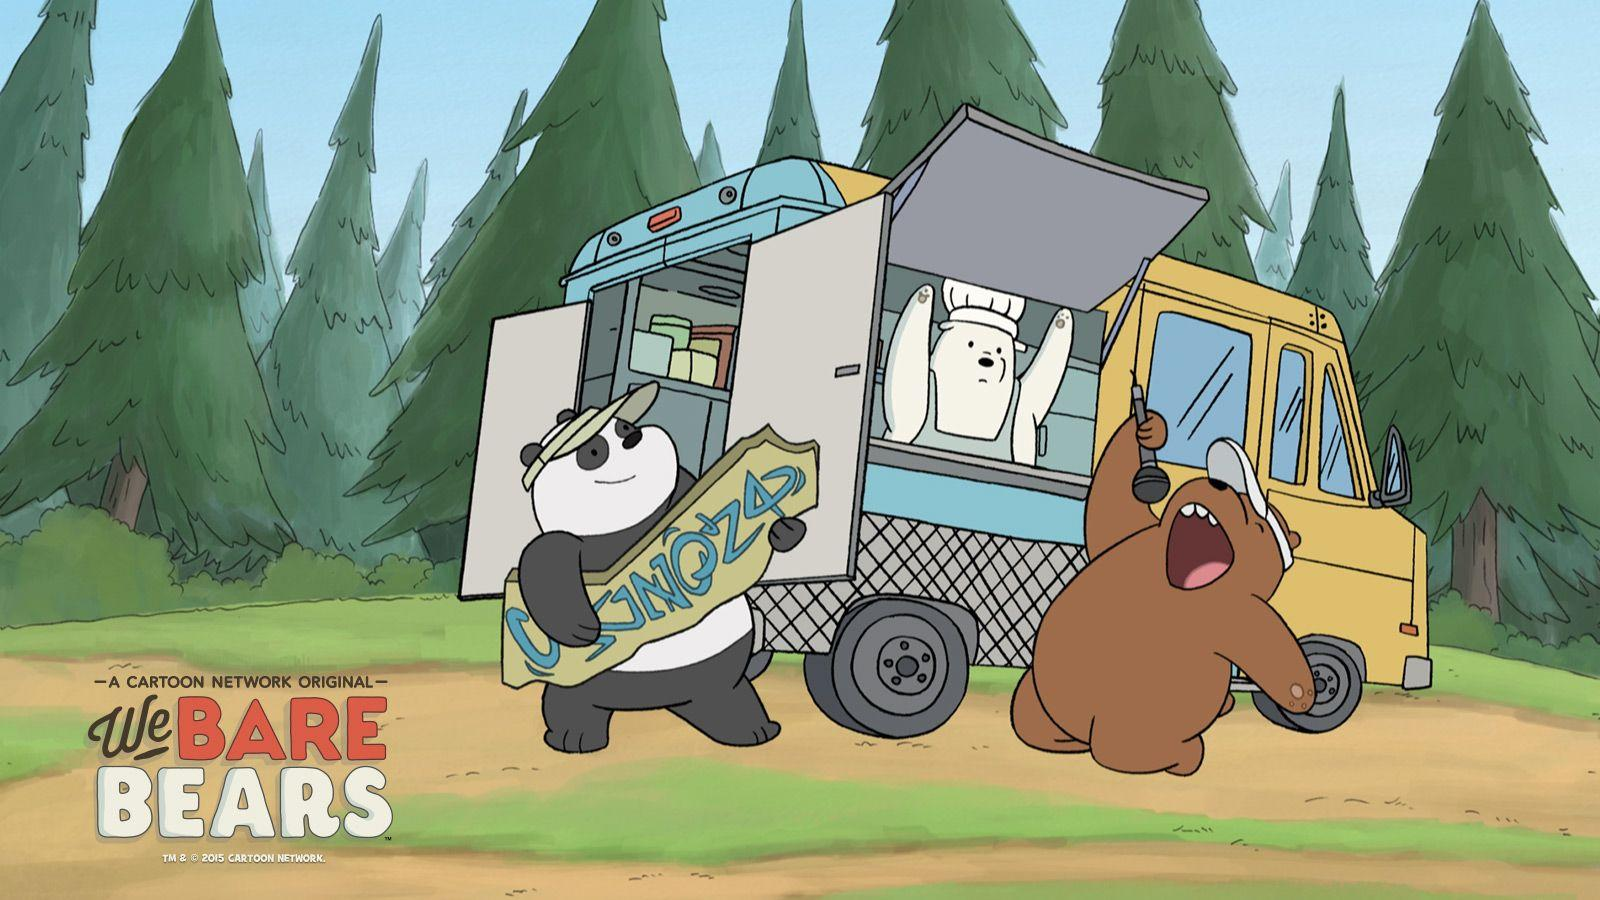 We Bare Bears Wallpaper - WallpaperSafari